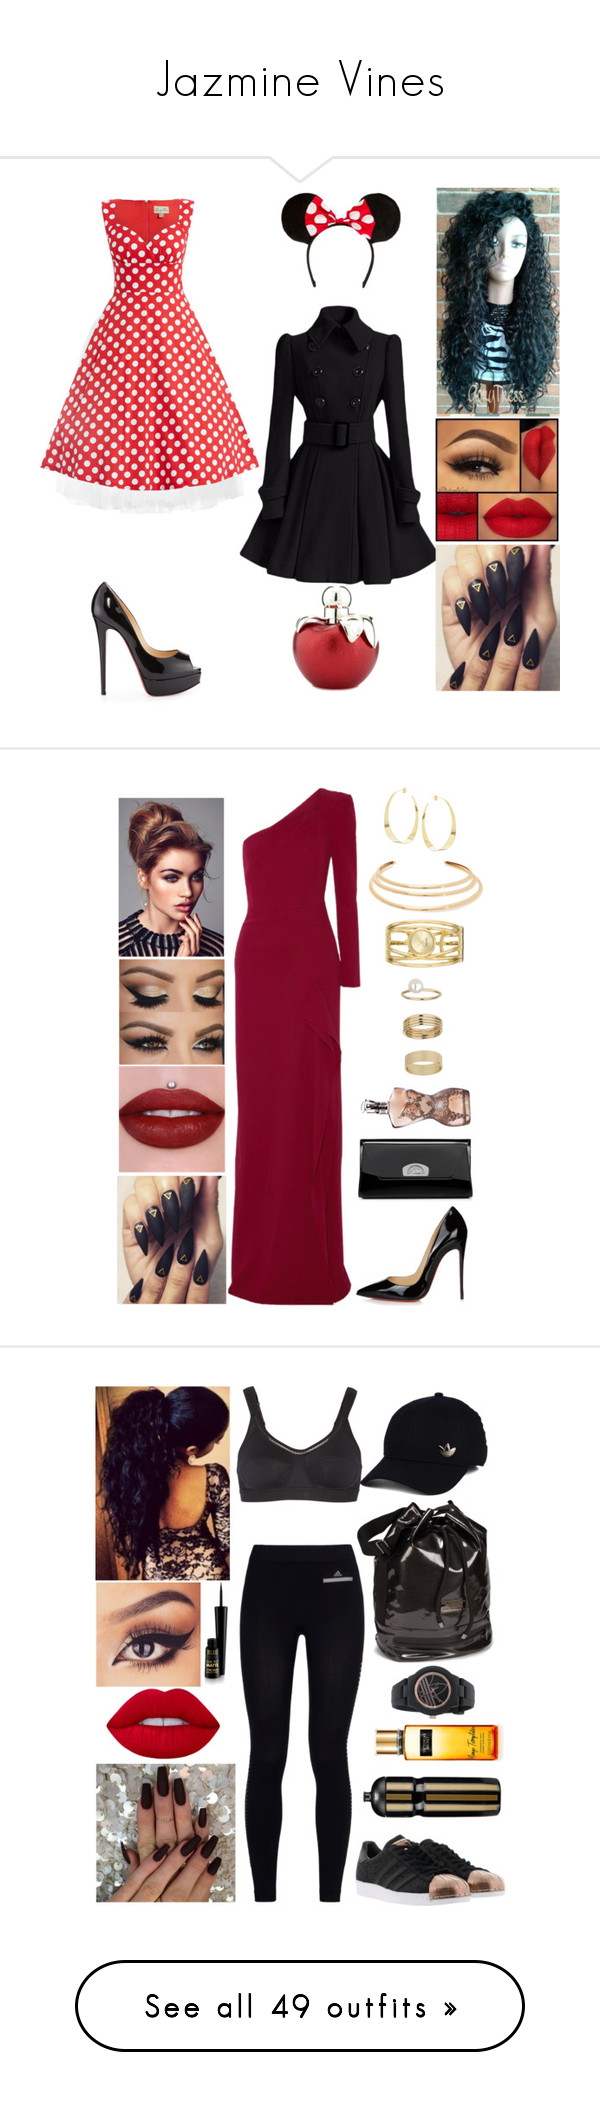 """""""Jazmine Vines"""" by the-wanted-potato ❤ liked on Polyvore featuring Ballet Beautiful, Christian Louboutin, Nina Ricci, Roland Mouret, Nine West, Lana, Kenneth Jay Lane, Miss Selfridge, Jean-Paul Gaultier and adidas"""